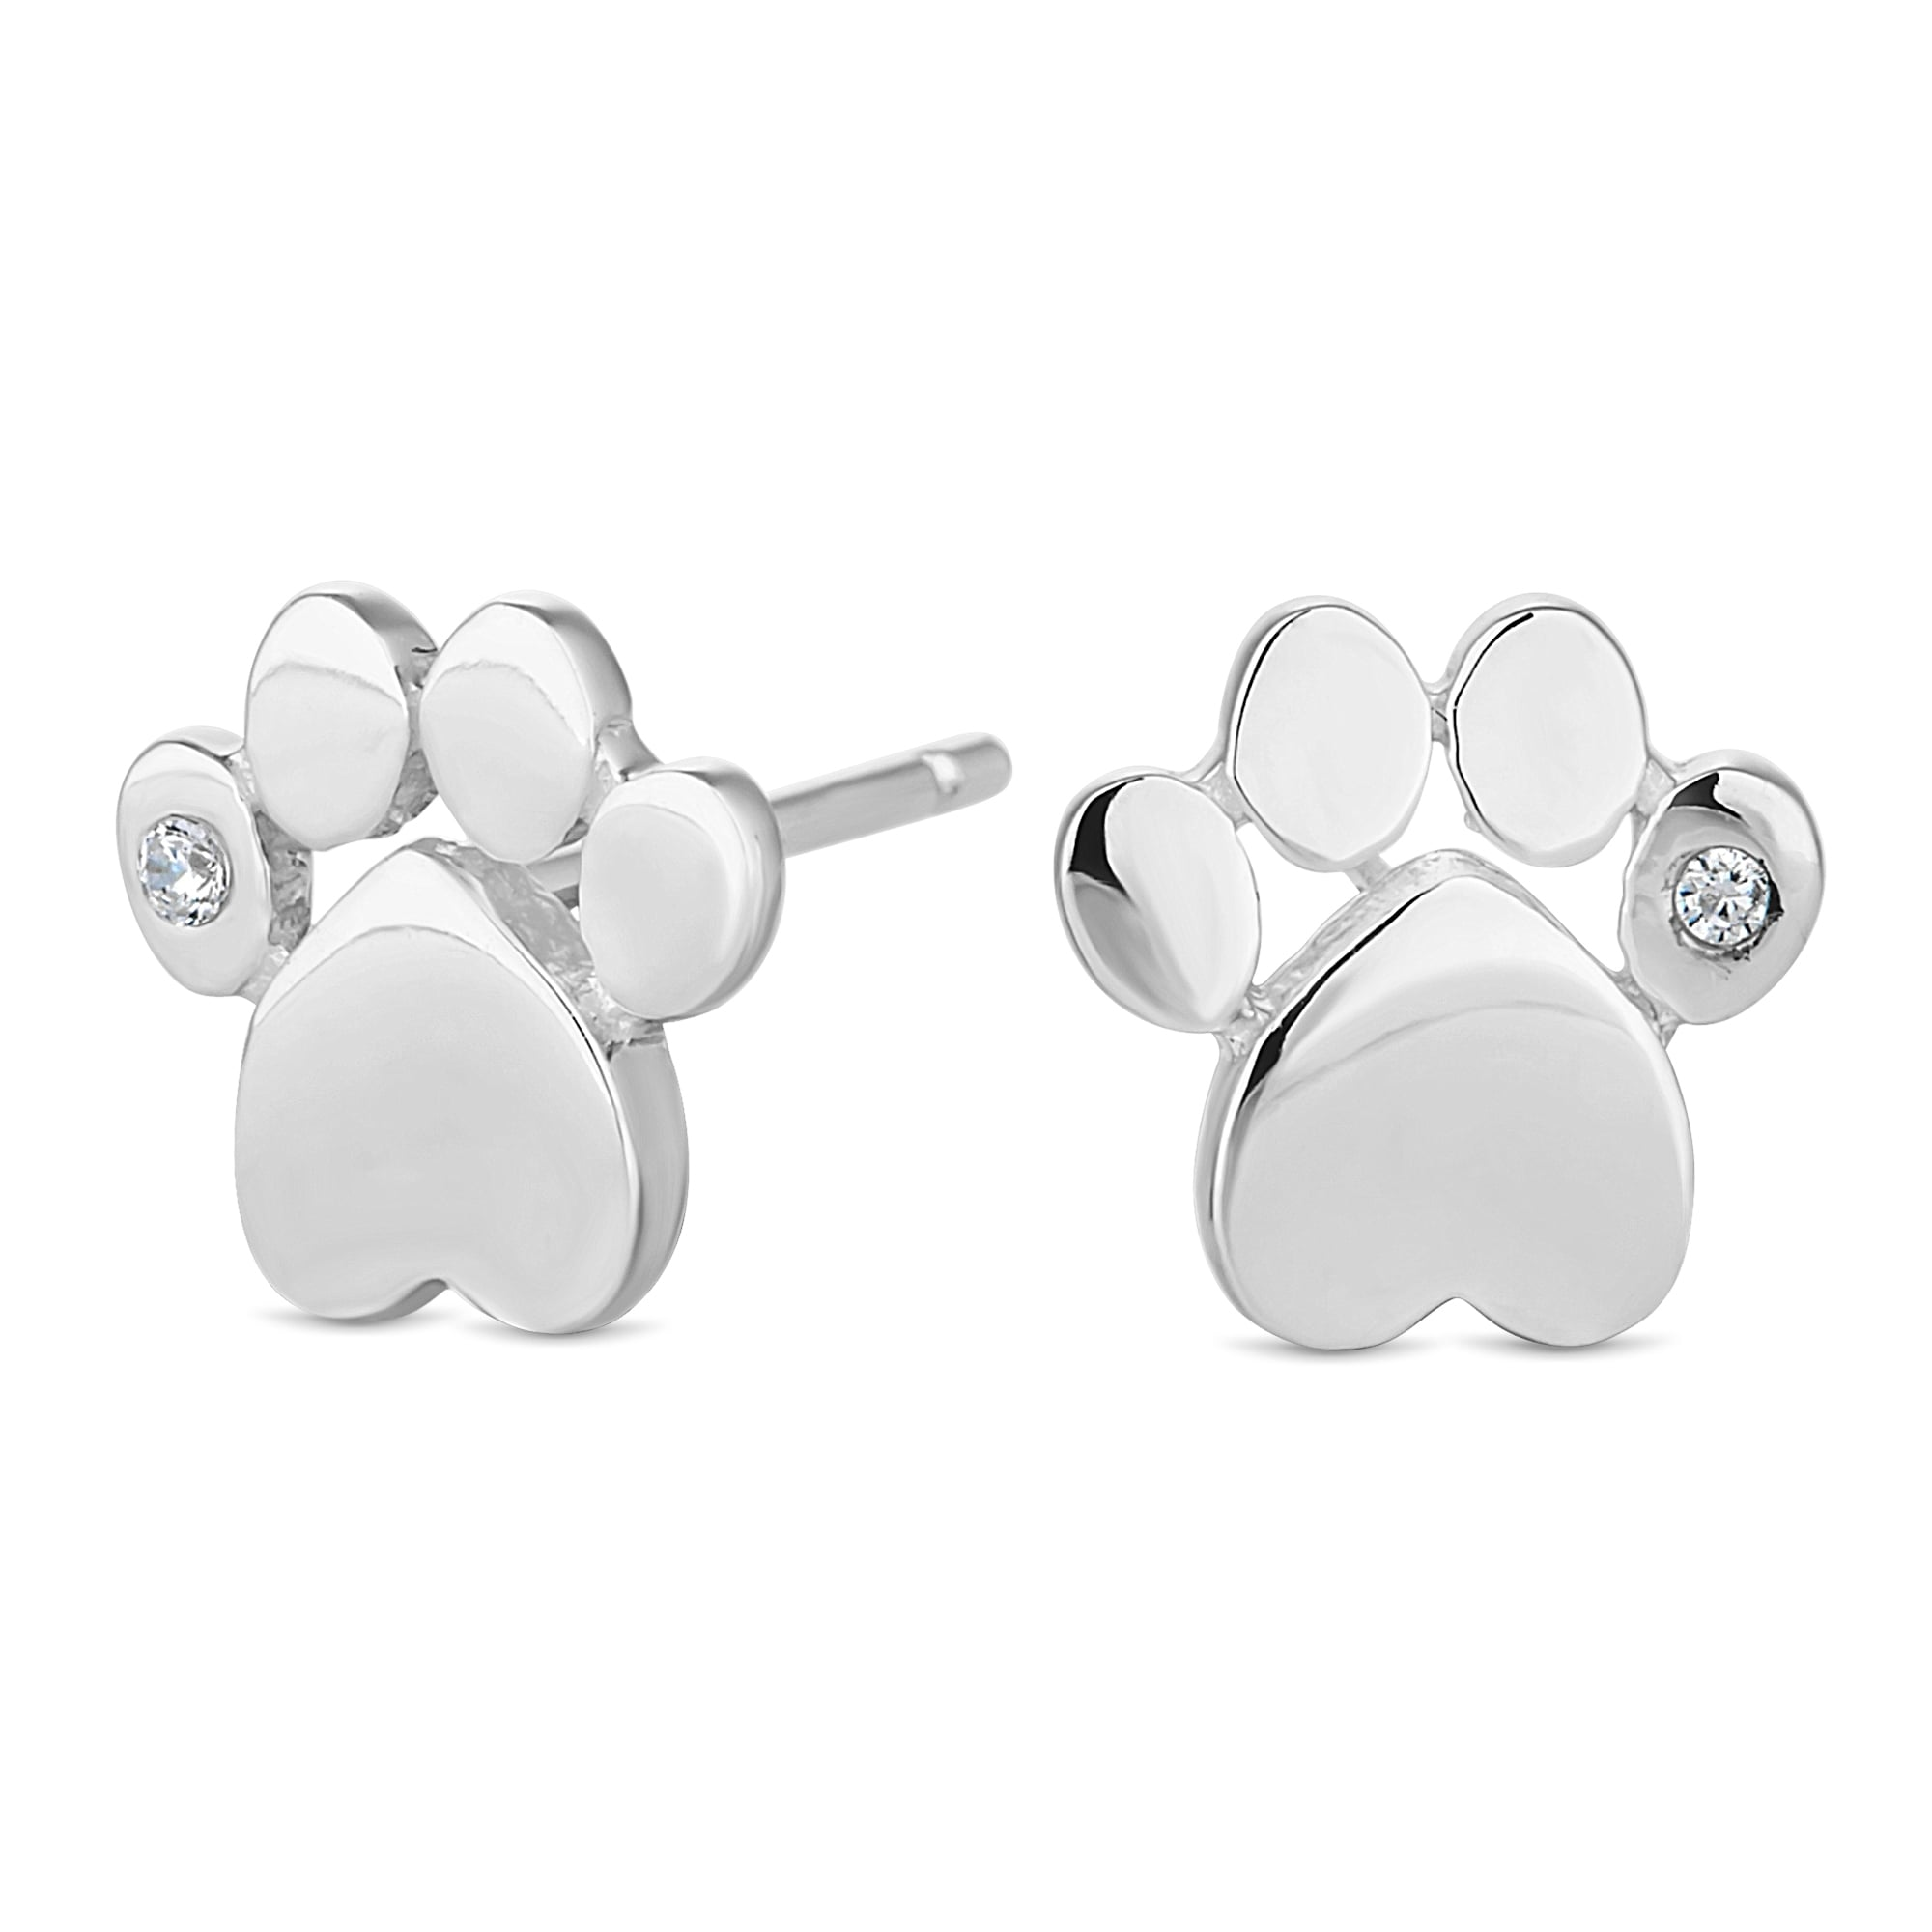 in arran view mm studs shop silver end jewellery stud nose sterling ball